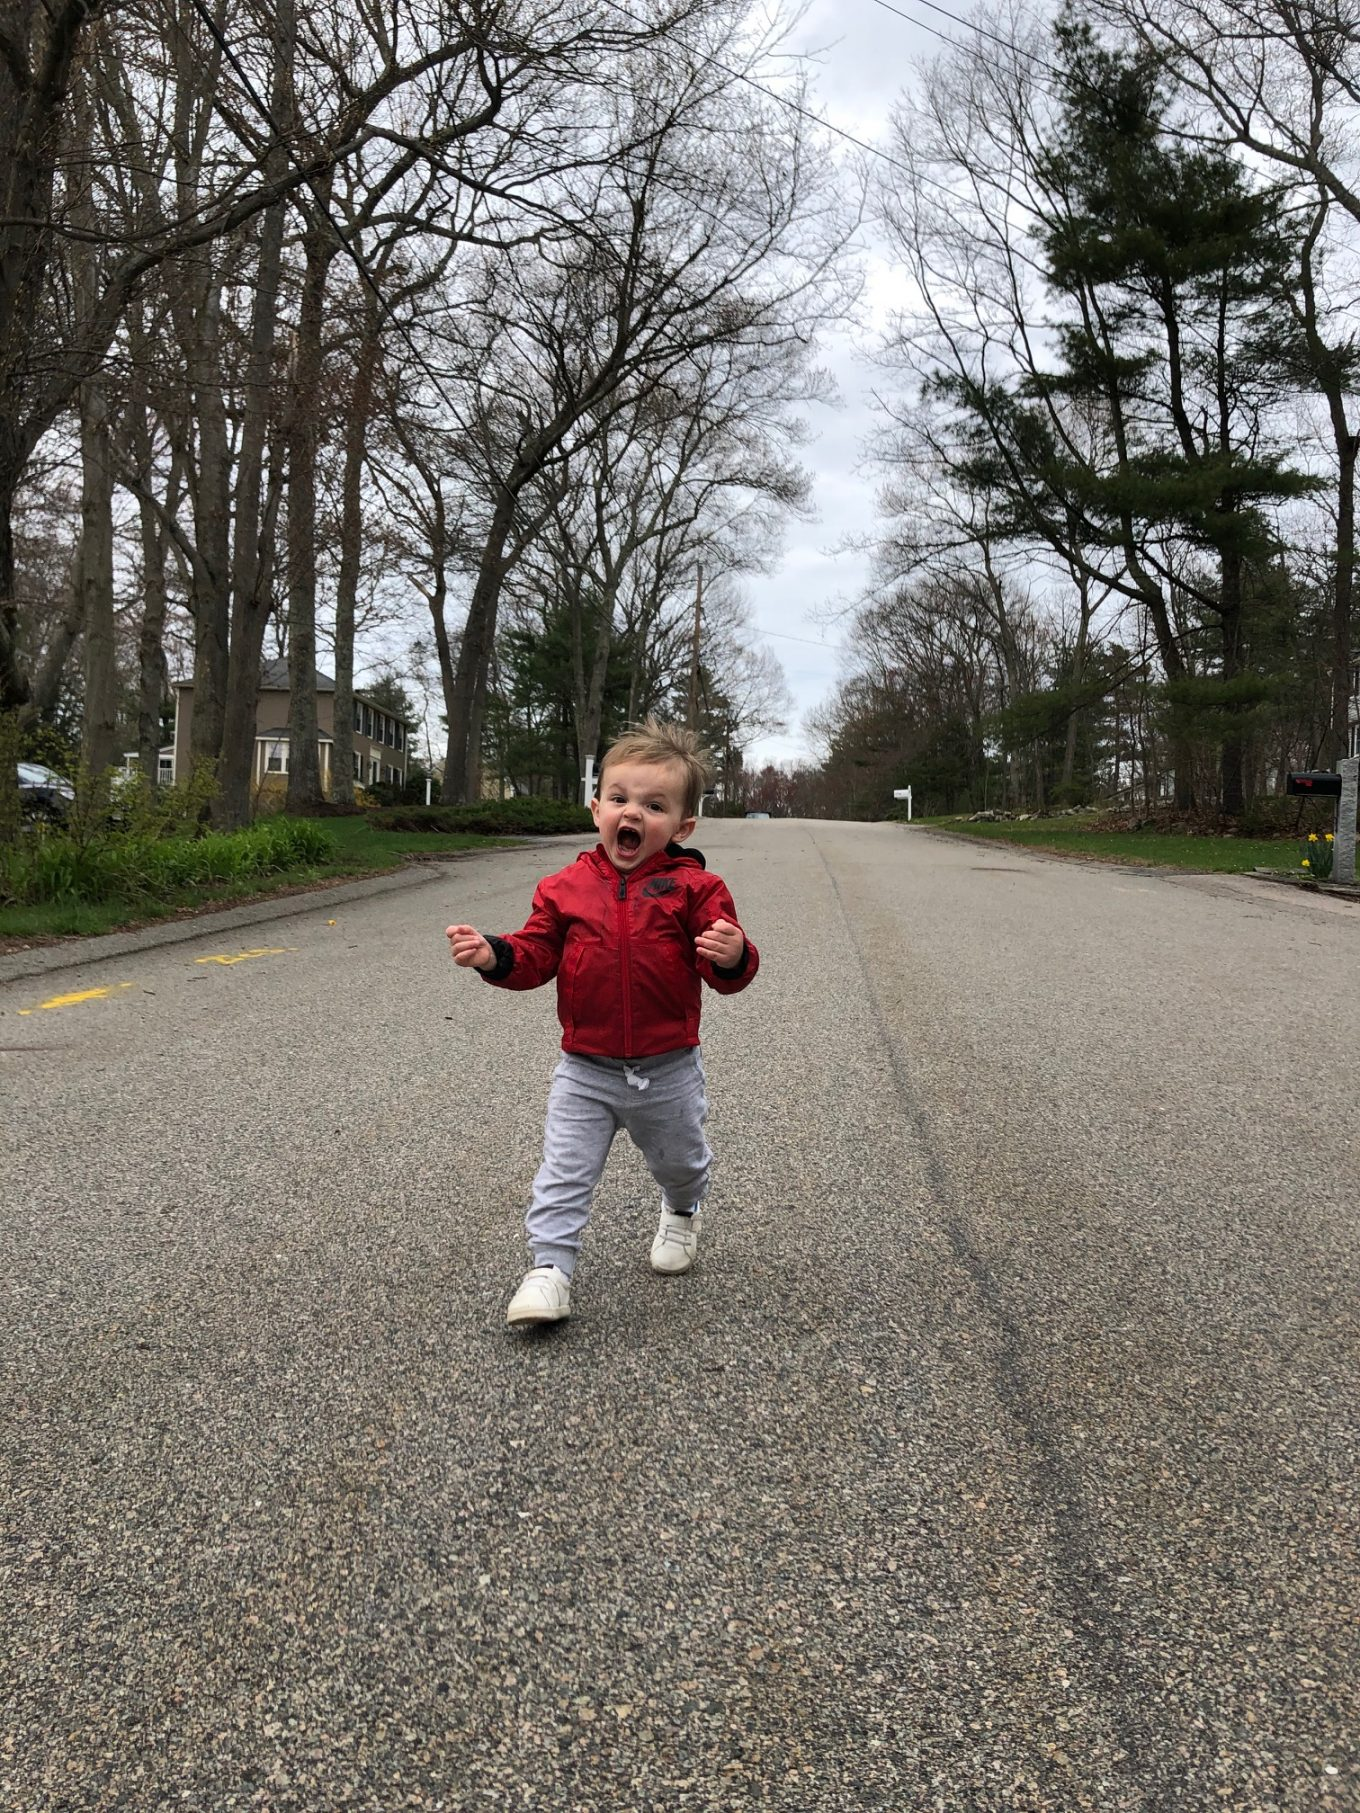 james running down the street